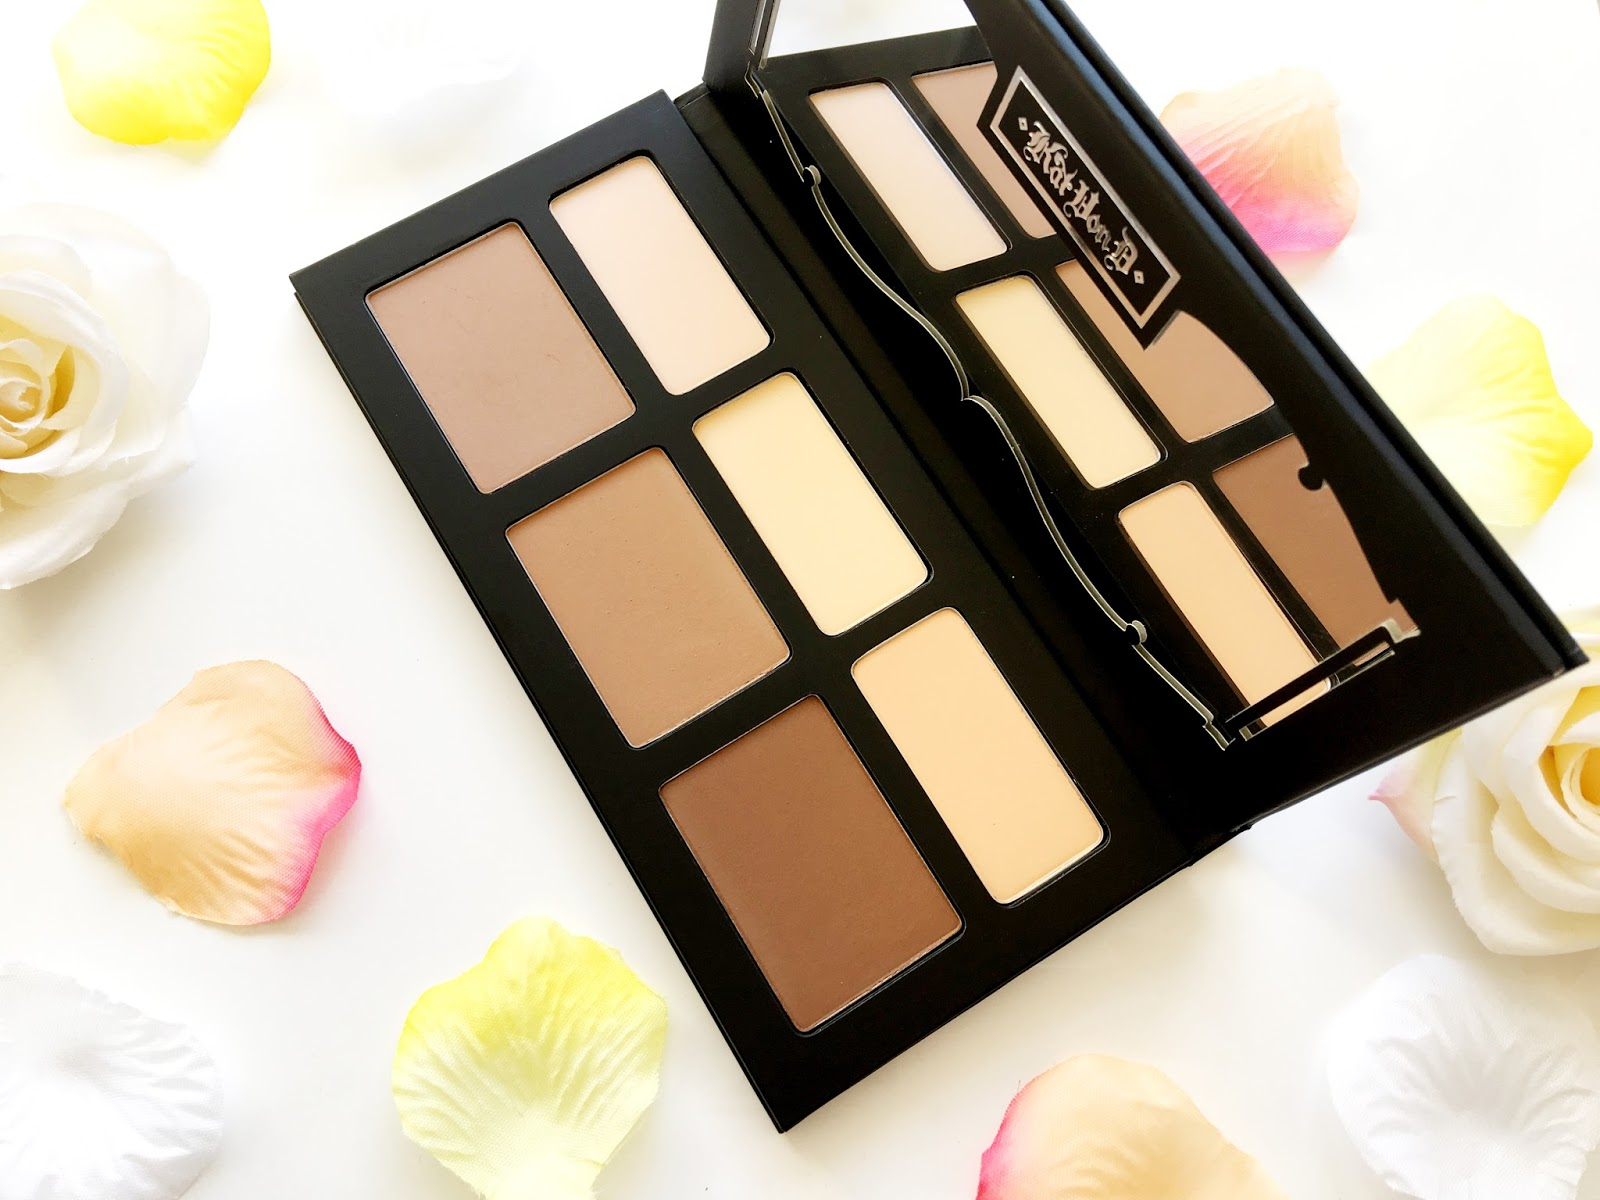 Kat Von D Shade and Light Contour Palette